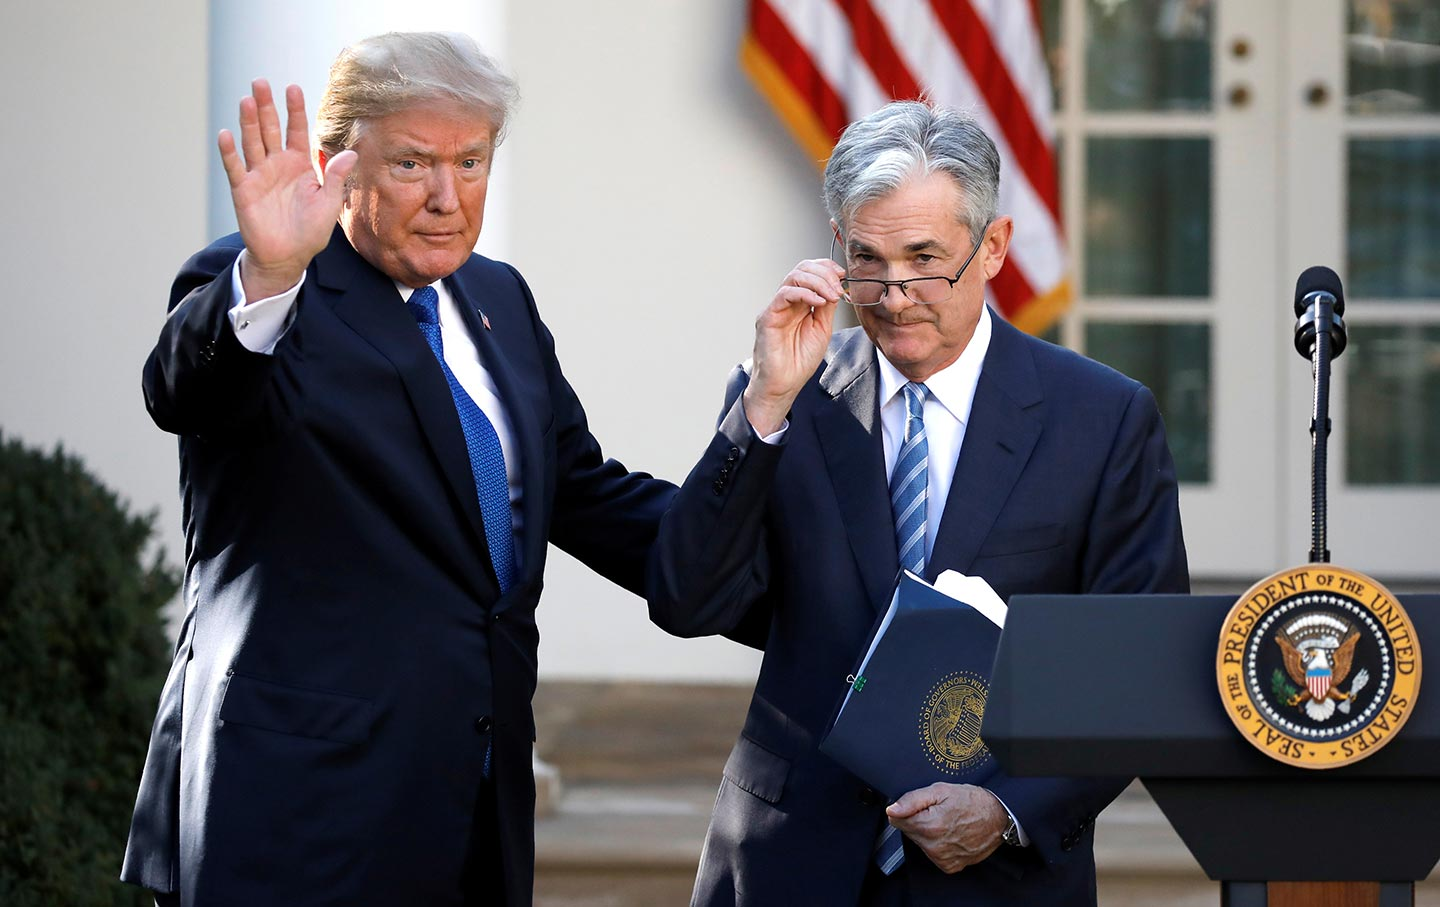 https://www.thenation.com/wp-content/uploads/2018/02/Trump-Jerome-Powell-rtr-img.jpg?scale=896&compress=80